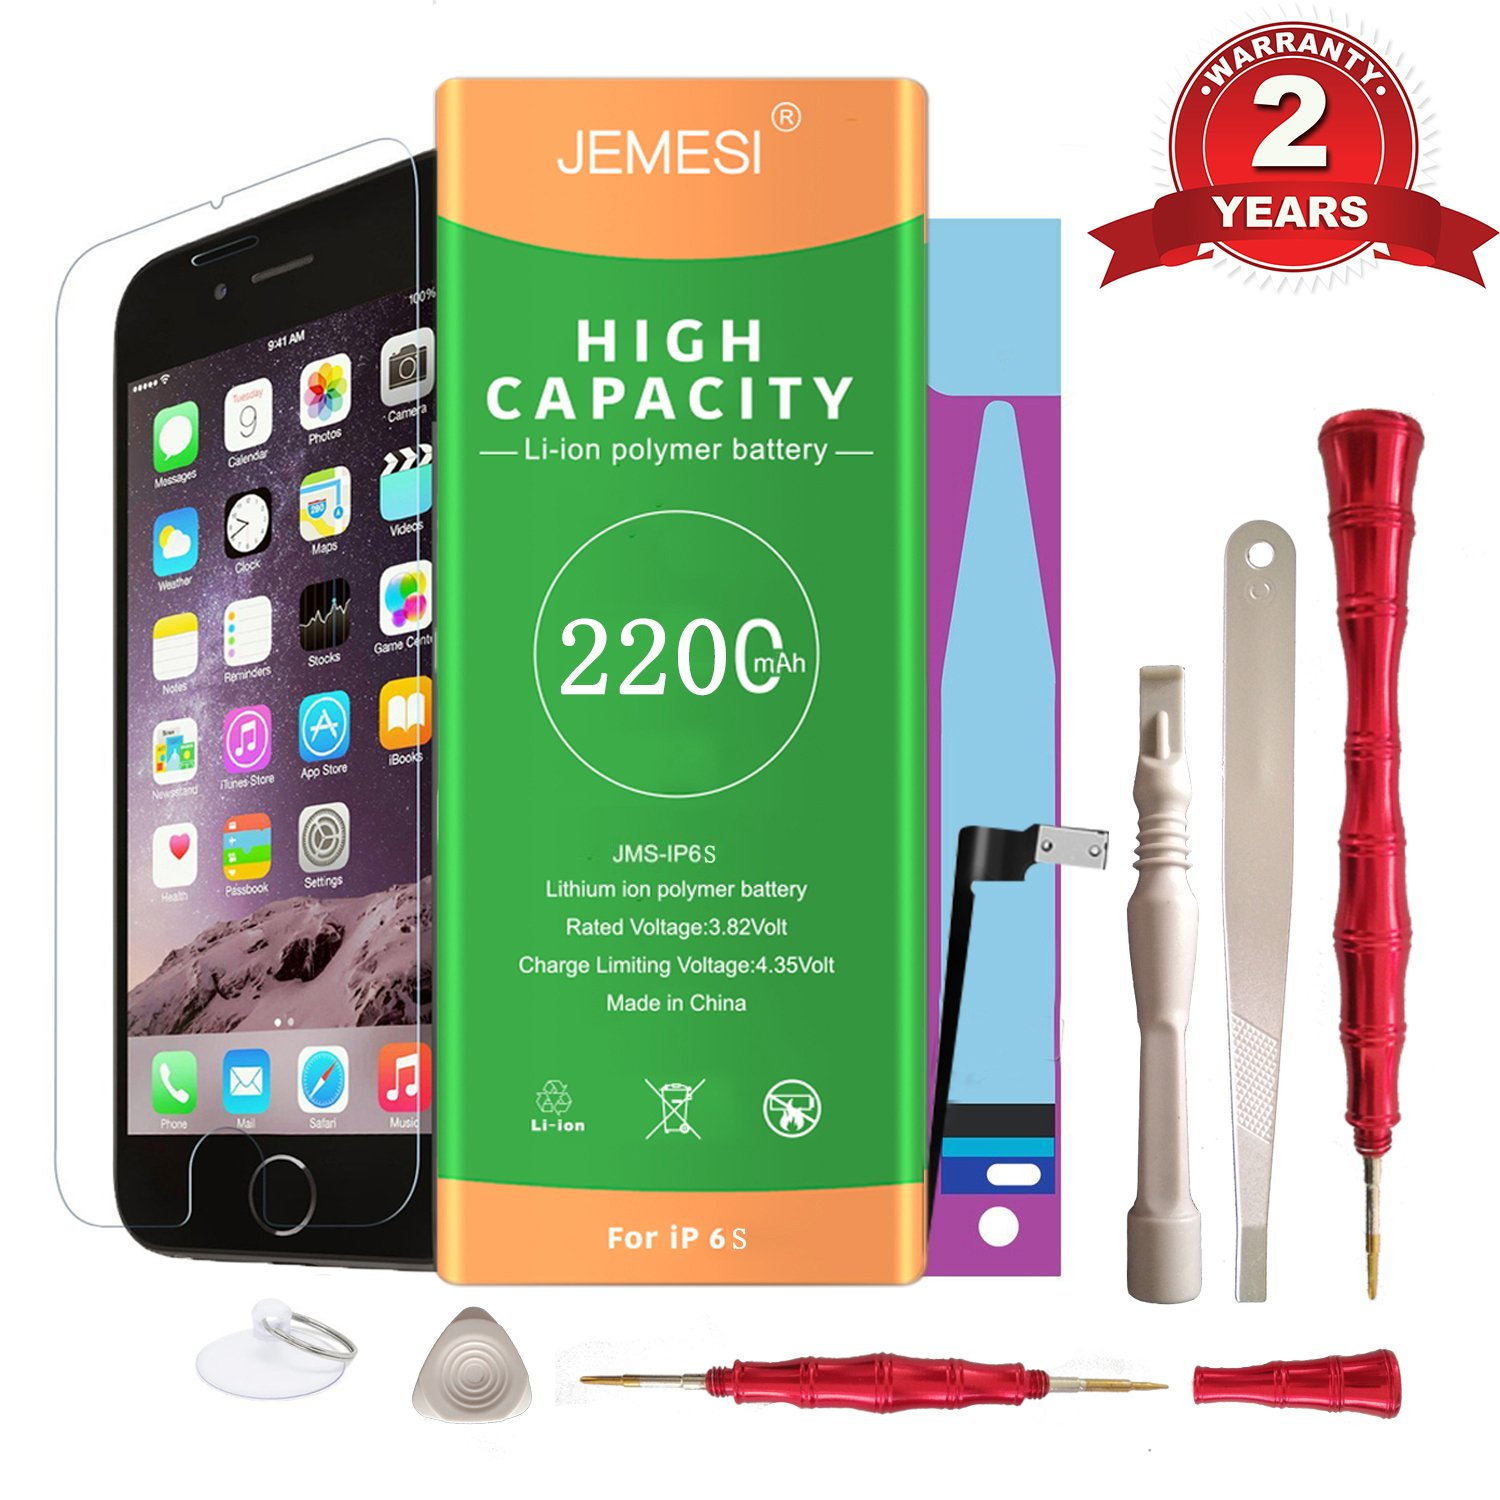 JEMESI Battery for iphone 6s with Repair Tools Kits - Instructions and Screen Protector,Brand New 0 Cycle Battery Replacement [24-month warranty]